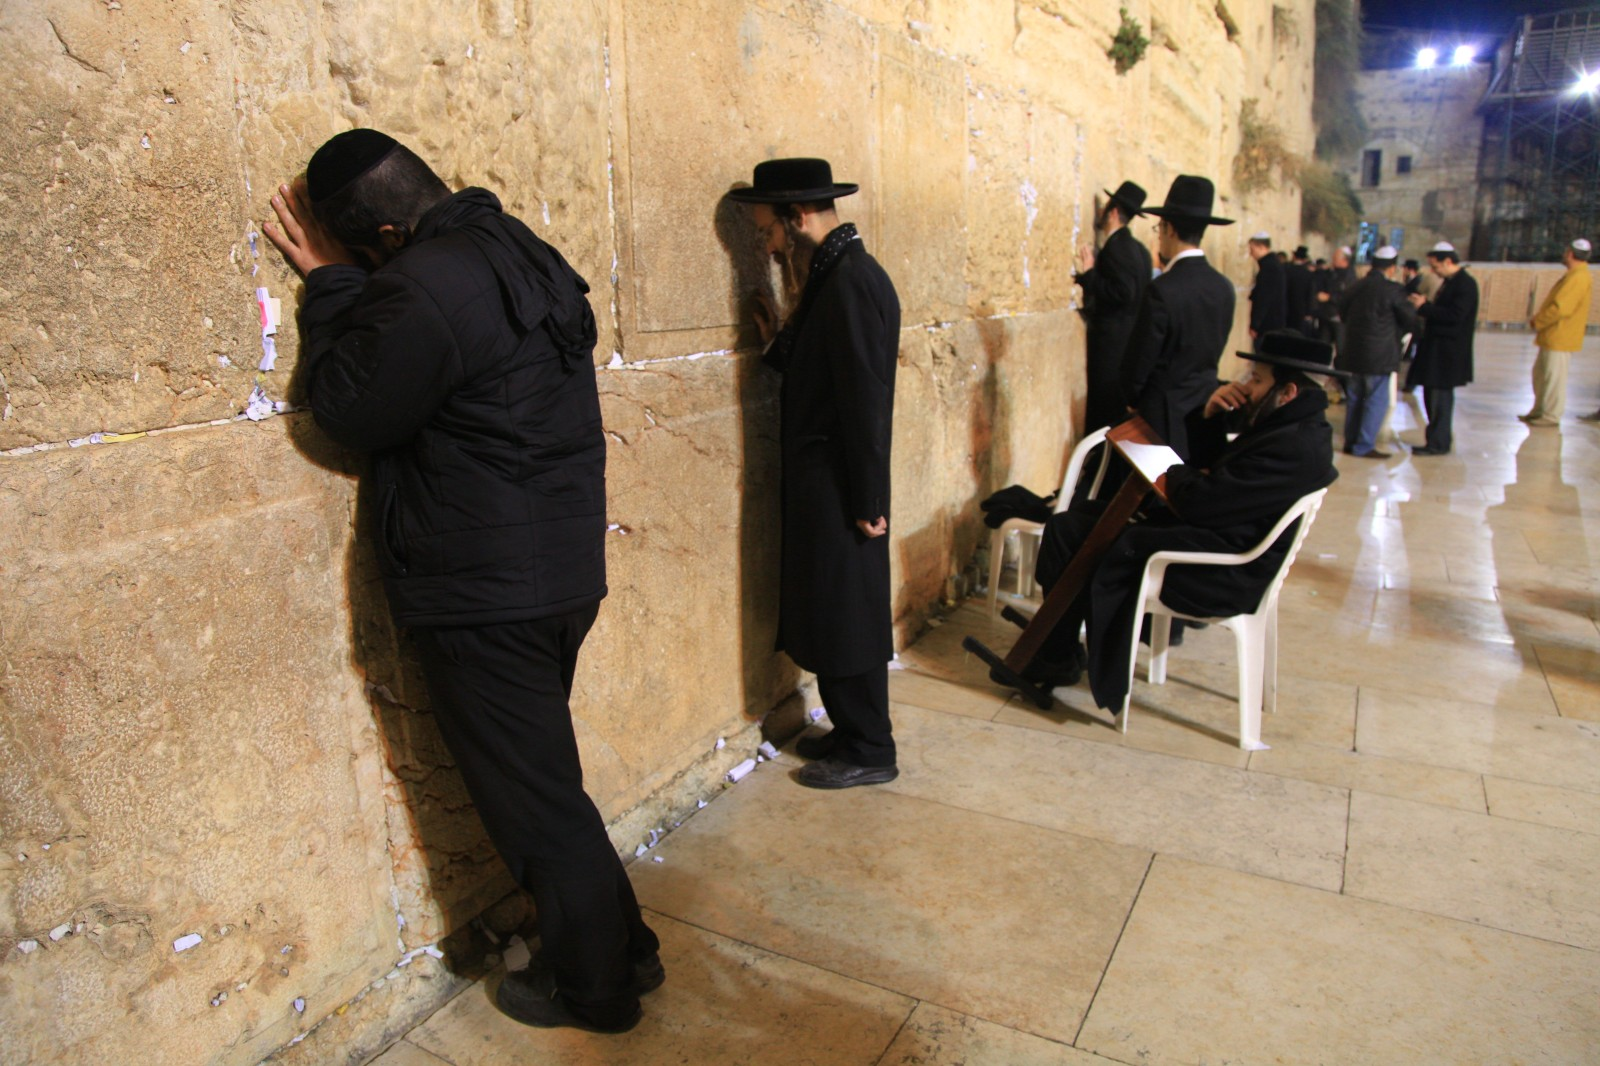 Some Jews travel remarkable distances from across the World for a honour to pray here